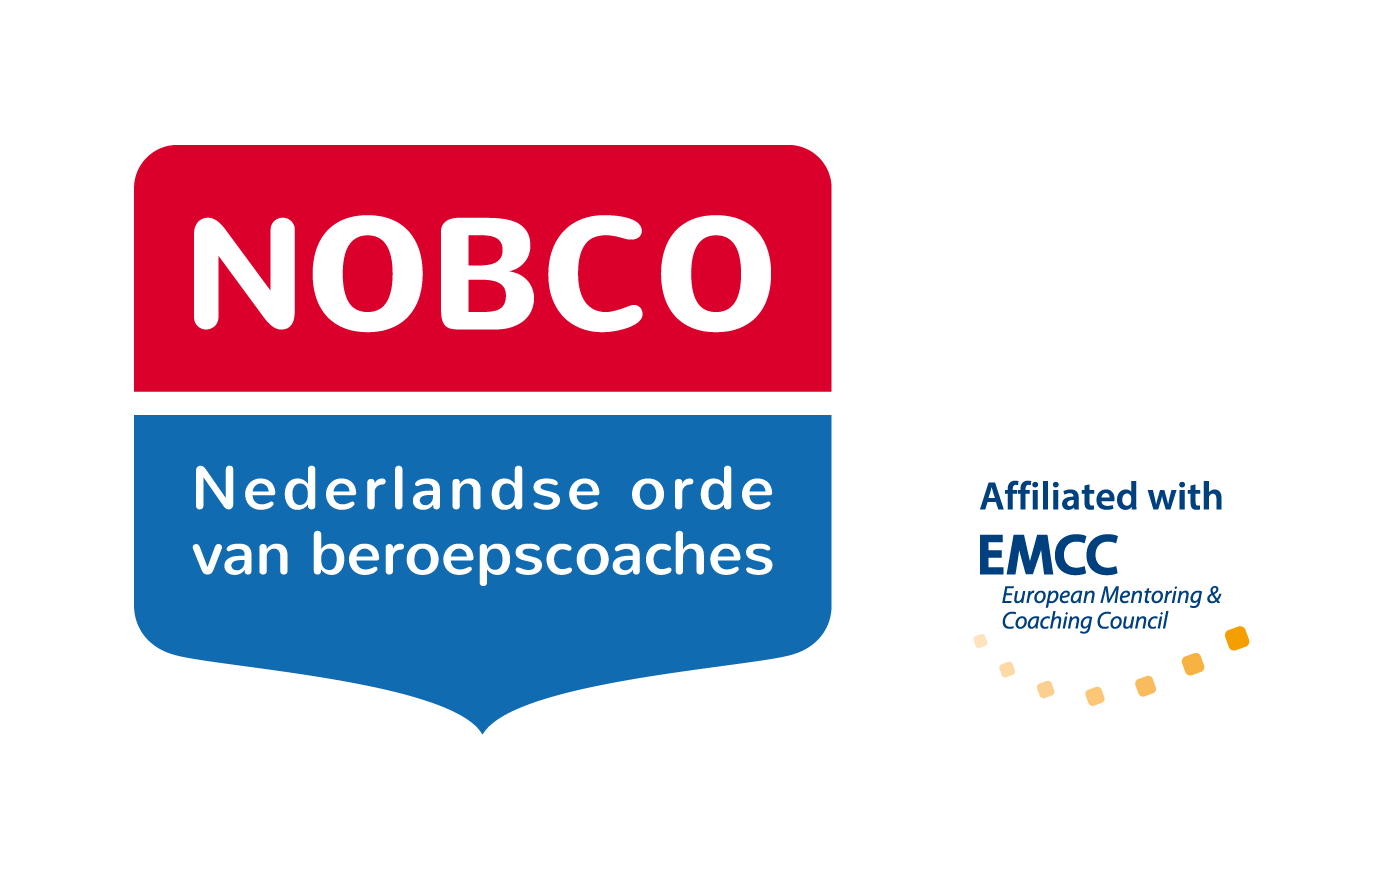 logo-nobco-affiliated-with-emcc-rgb (1)